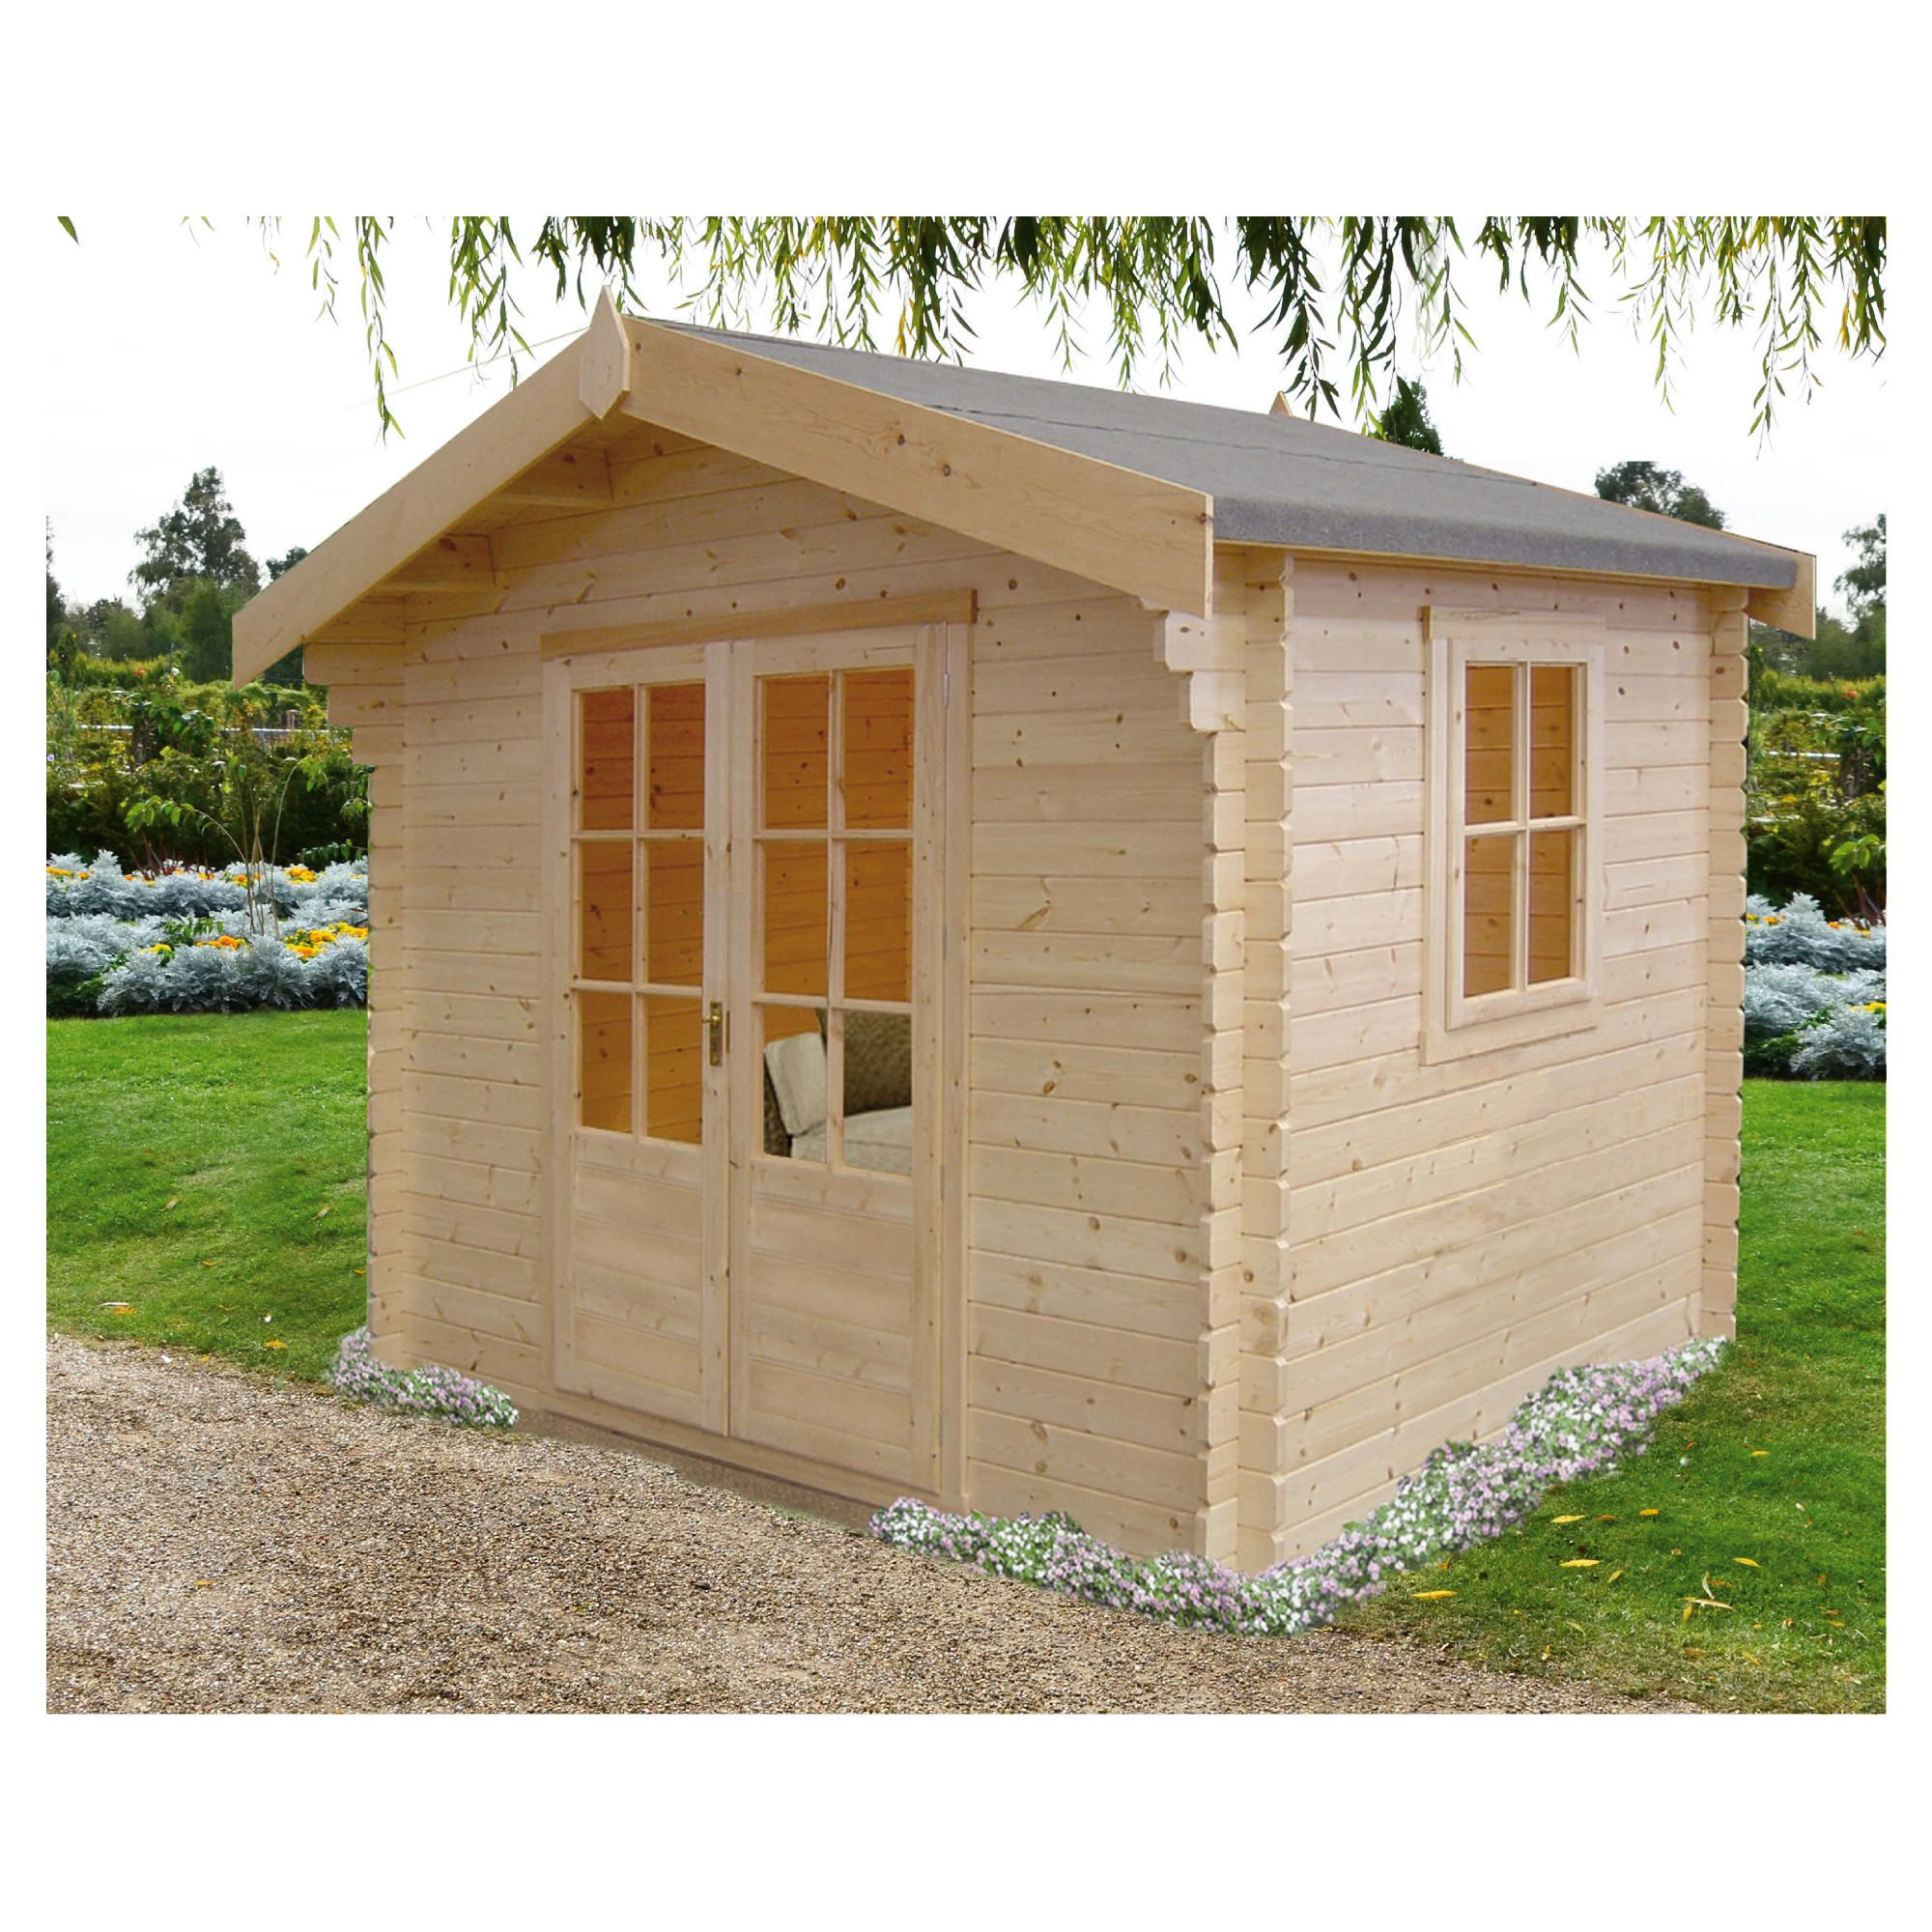 Finewood Fiston Log Cabin 8x8 - Installed at Tesco Direct